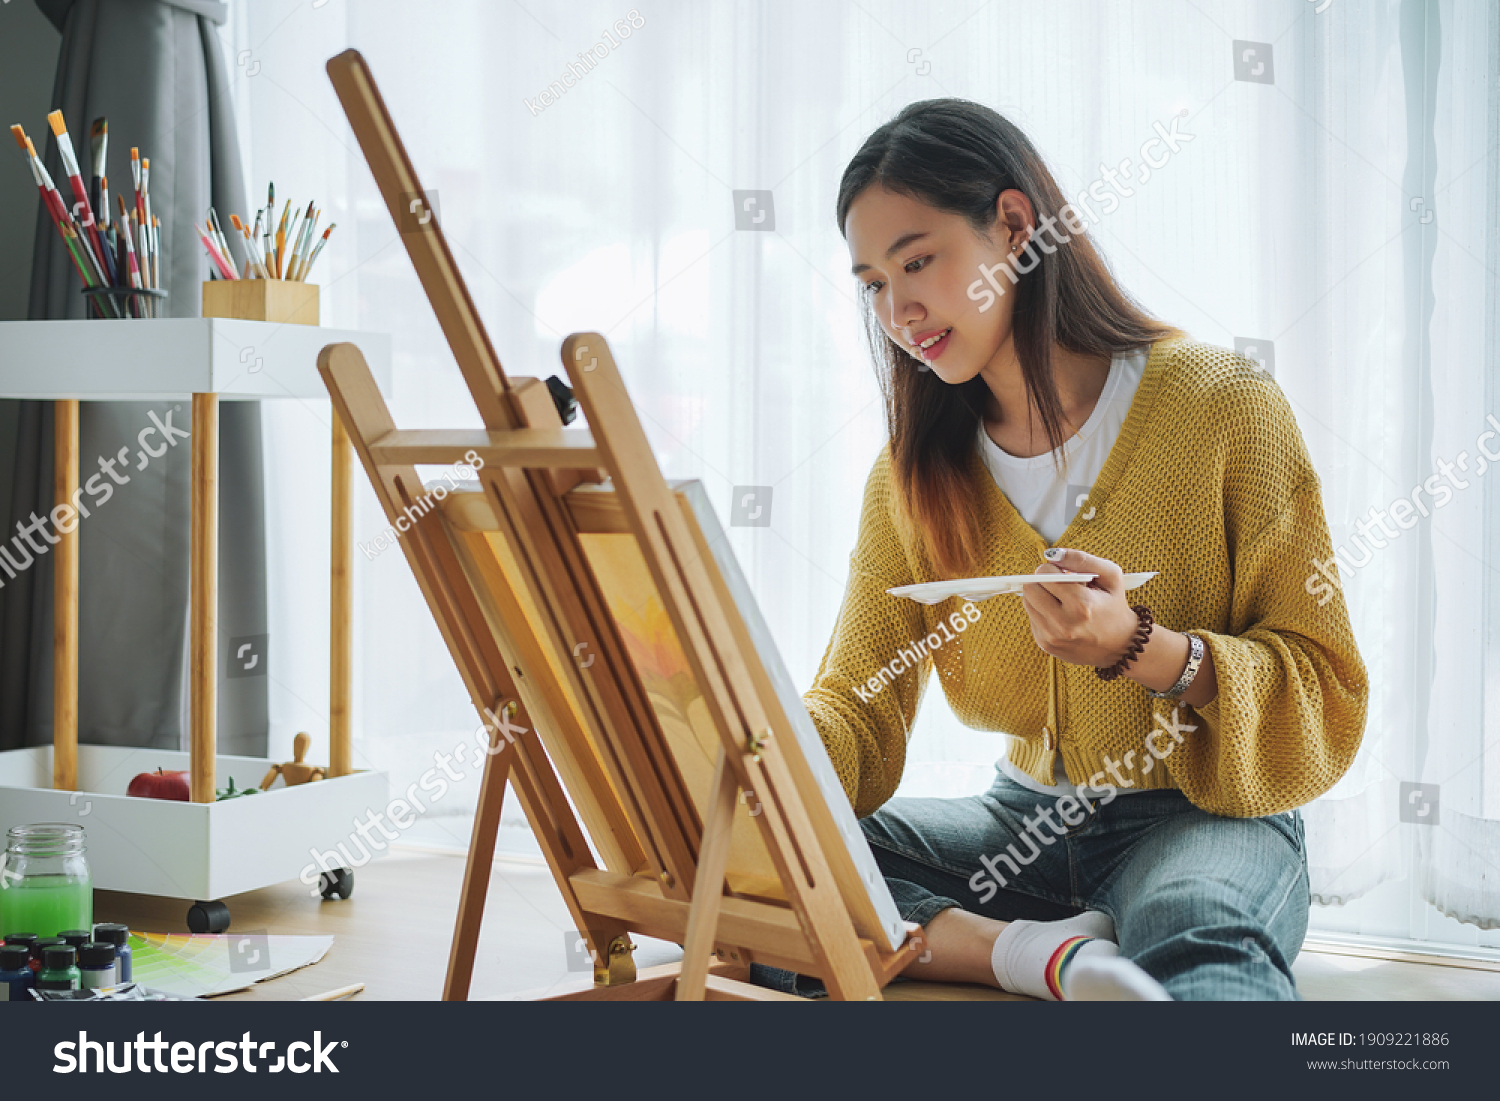 Female artist painting on canvas at home. Hobby and leisure concept. #1909221886